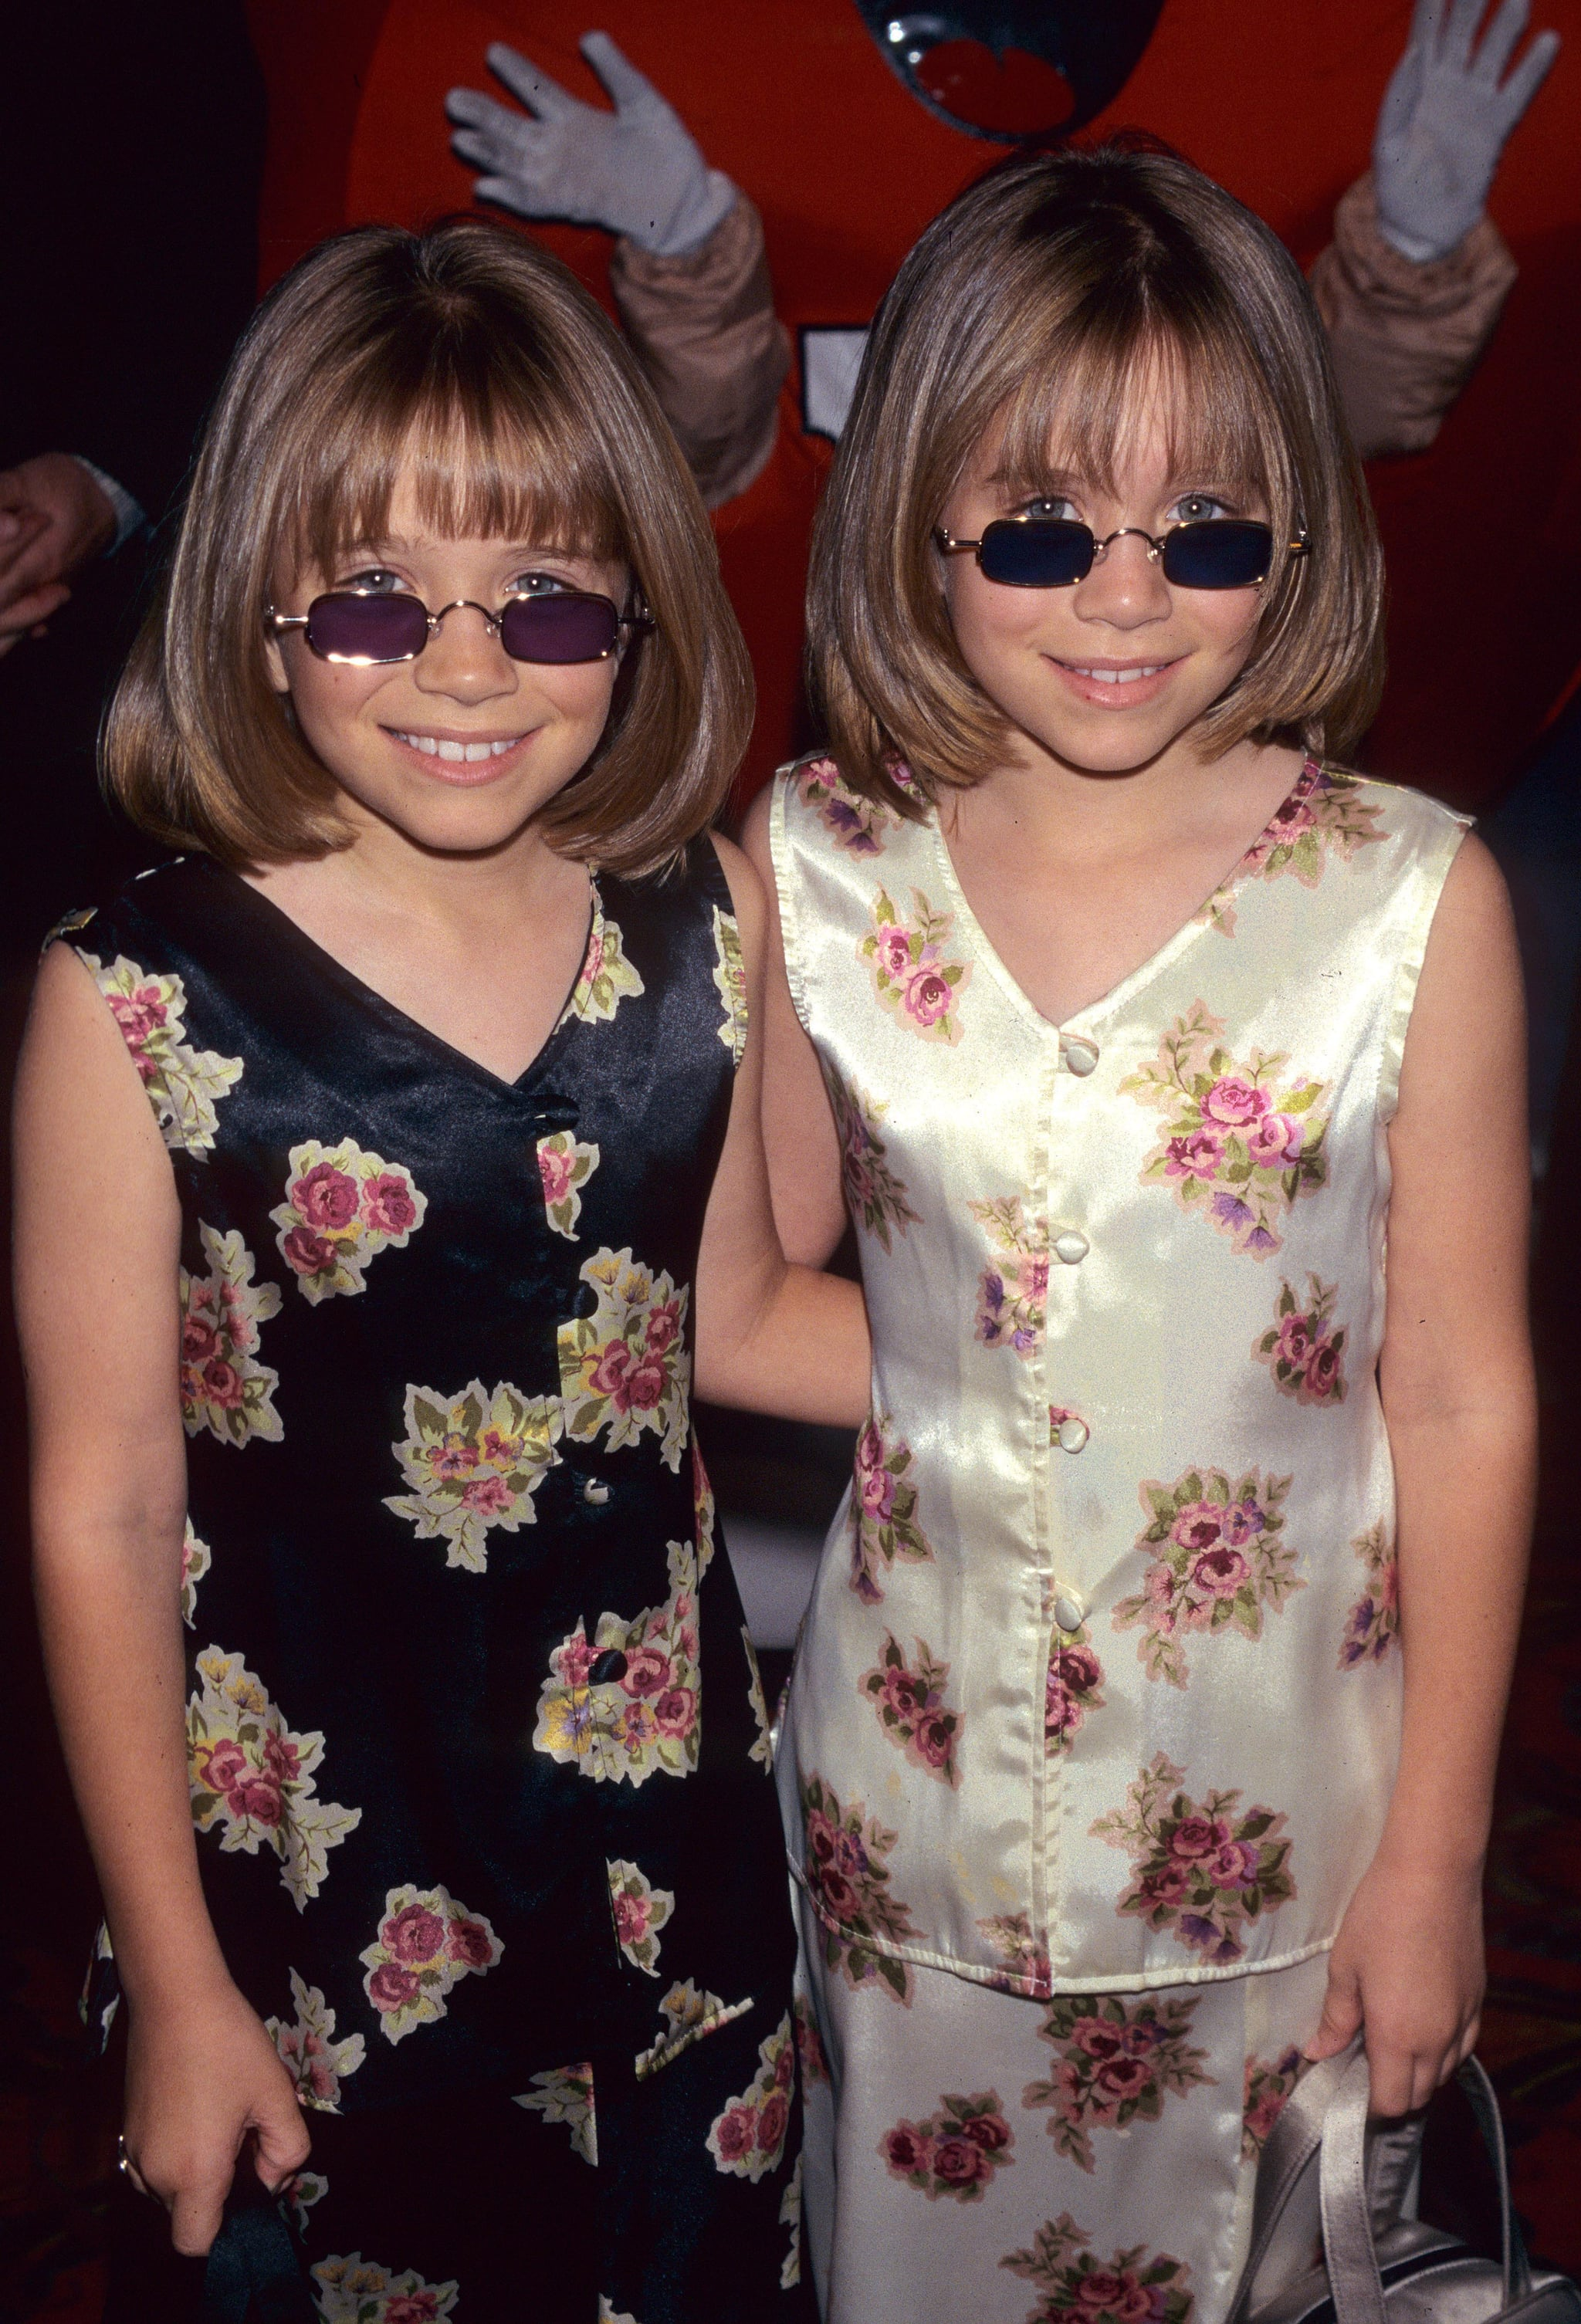 At the 1997 Audrey Hepburn Hollywood For Children Family Film Festival, the pair got groovy in silk floral outfits, chin-length cuts, and purple sunglasses.